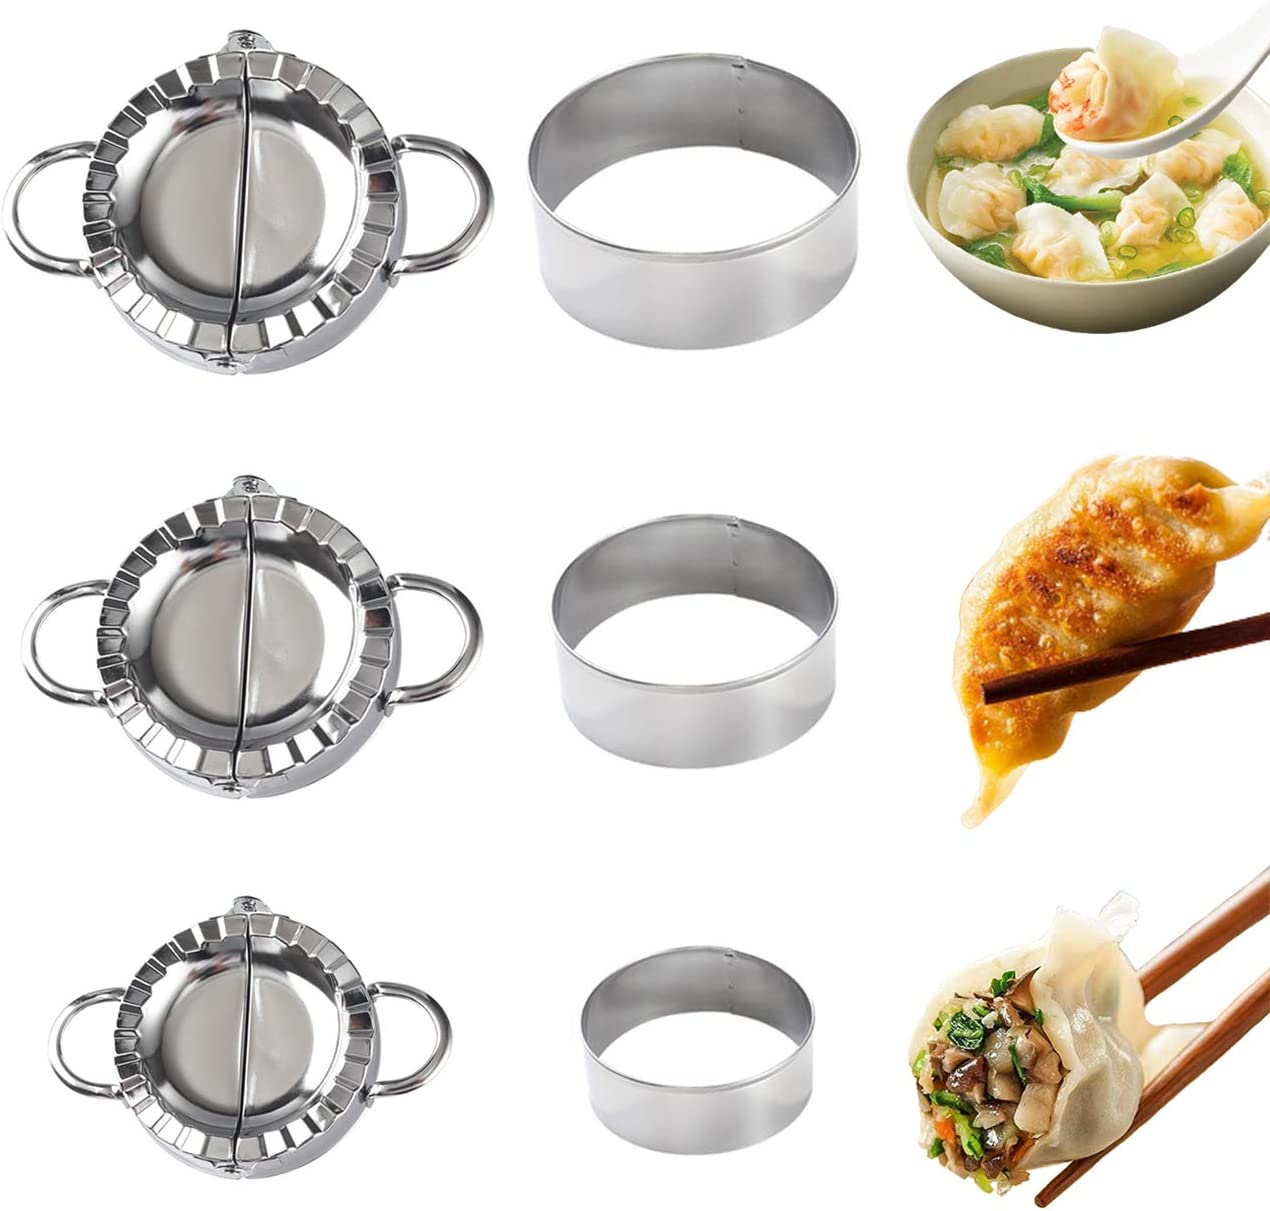 6 Packs Dumplings Maker Molds 3 Shipping included Stainless Steel Empanada Special price for a limited time Press